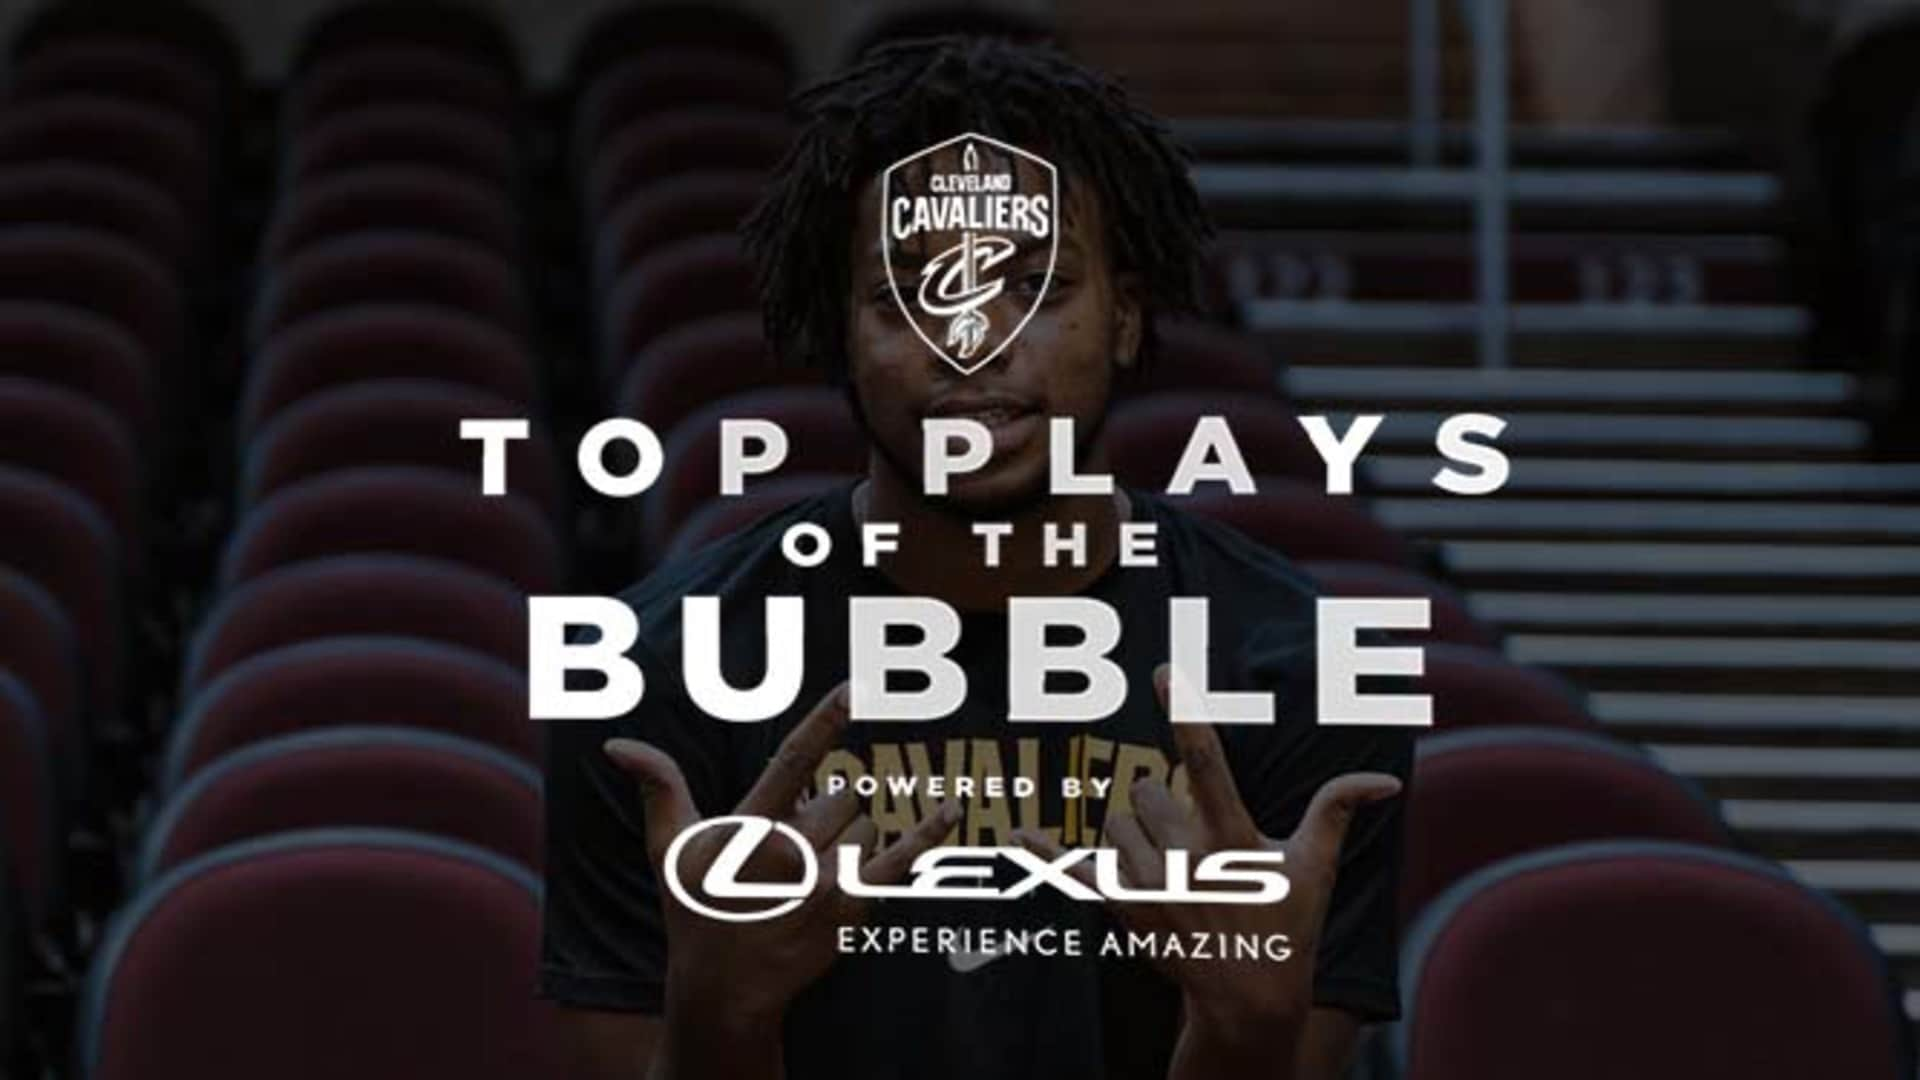 Top Plays of the Bubble Powered by Lexus: Darius Garland